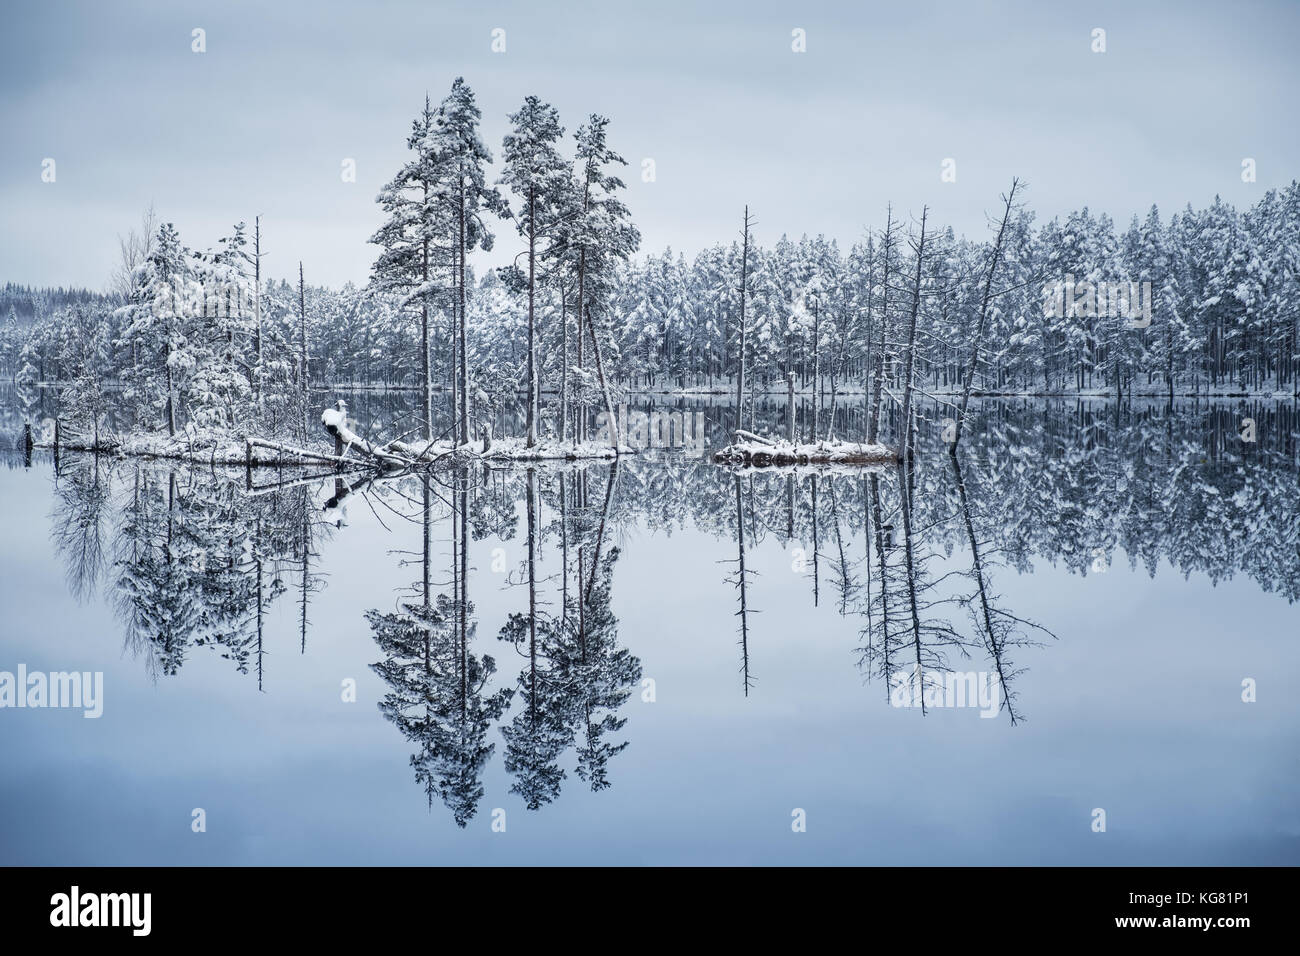 Scenic landscape with lake reflection and snow at winter evening - Stock Image